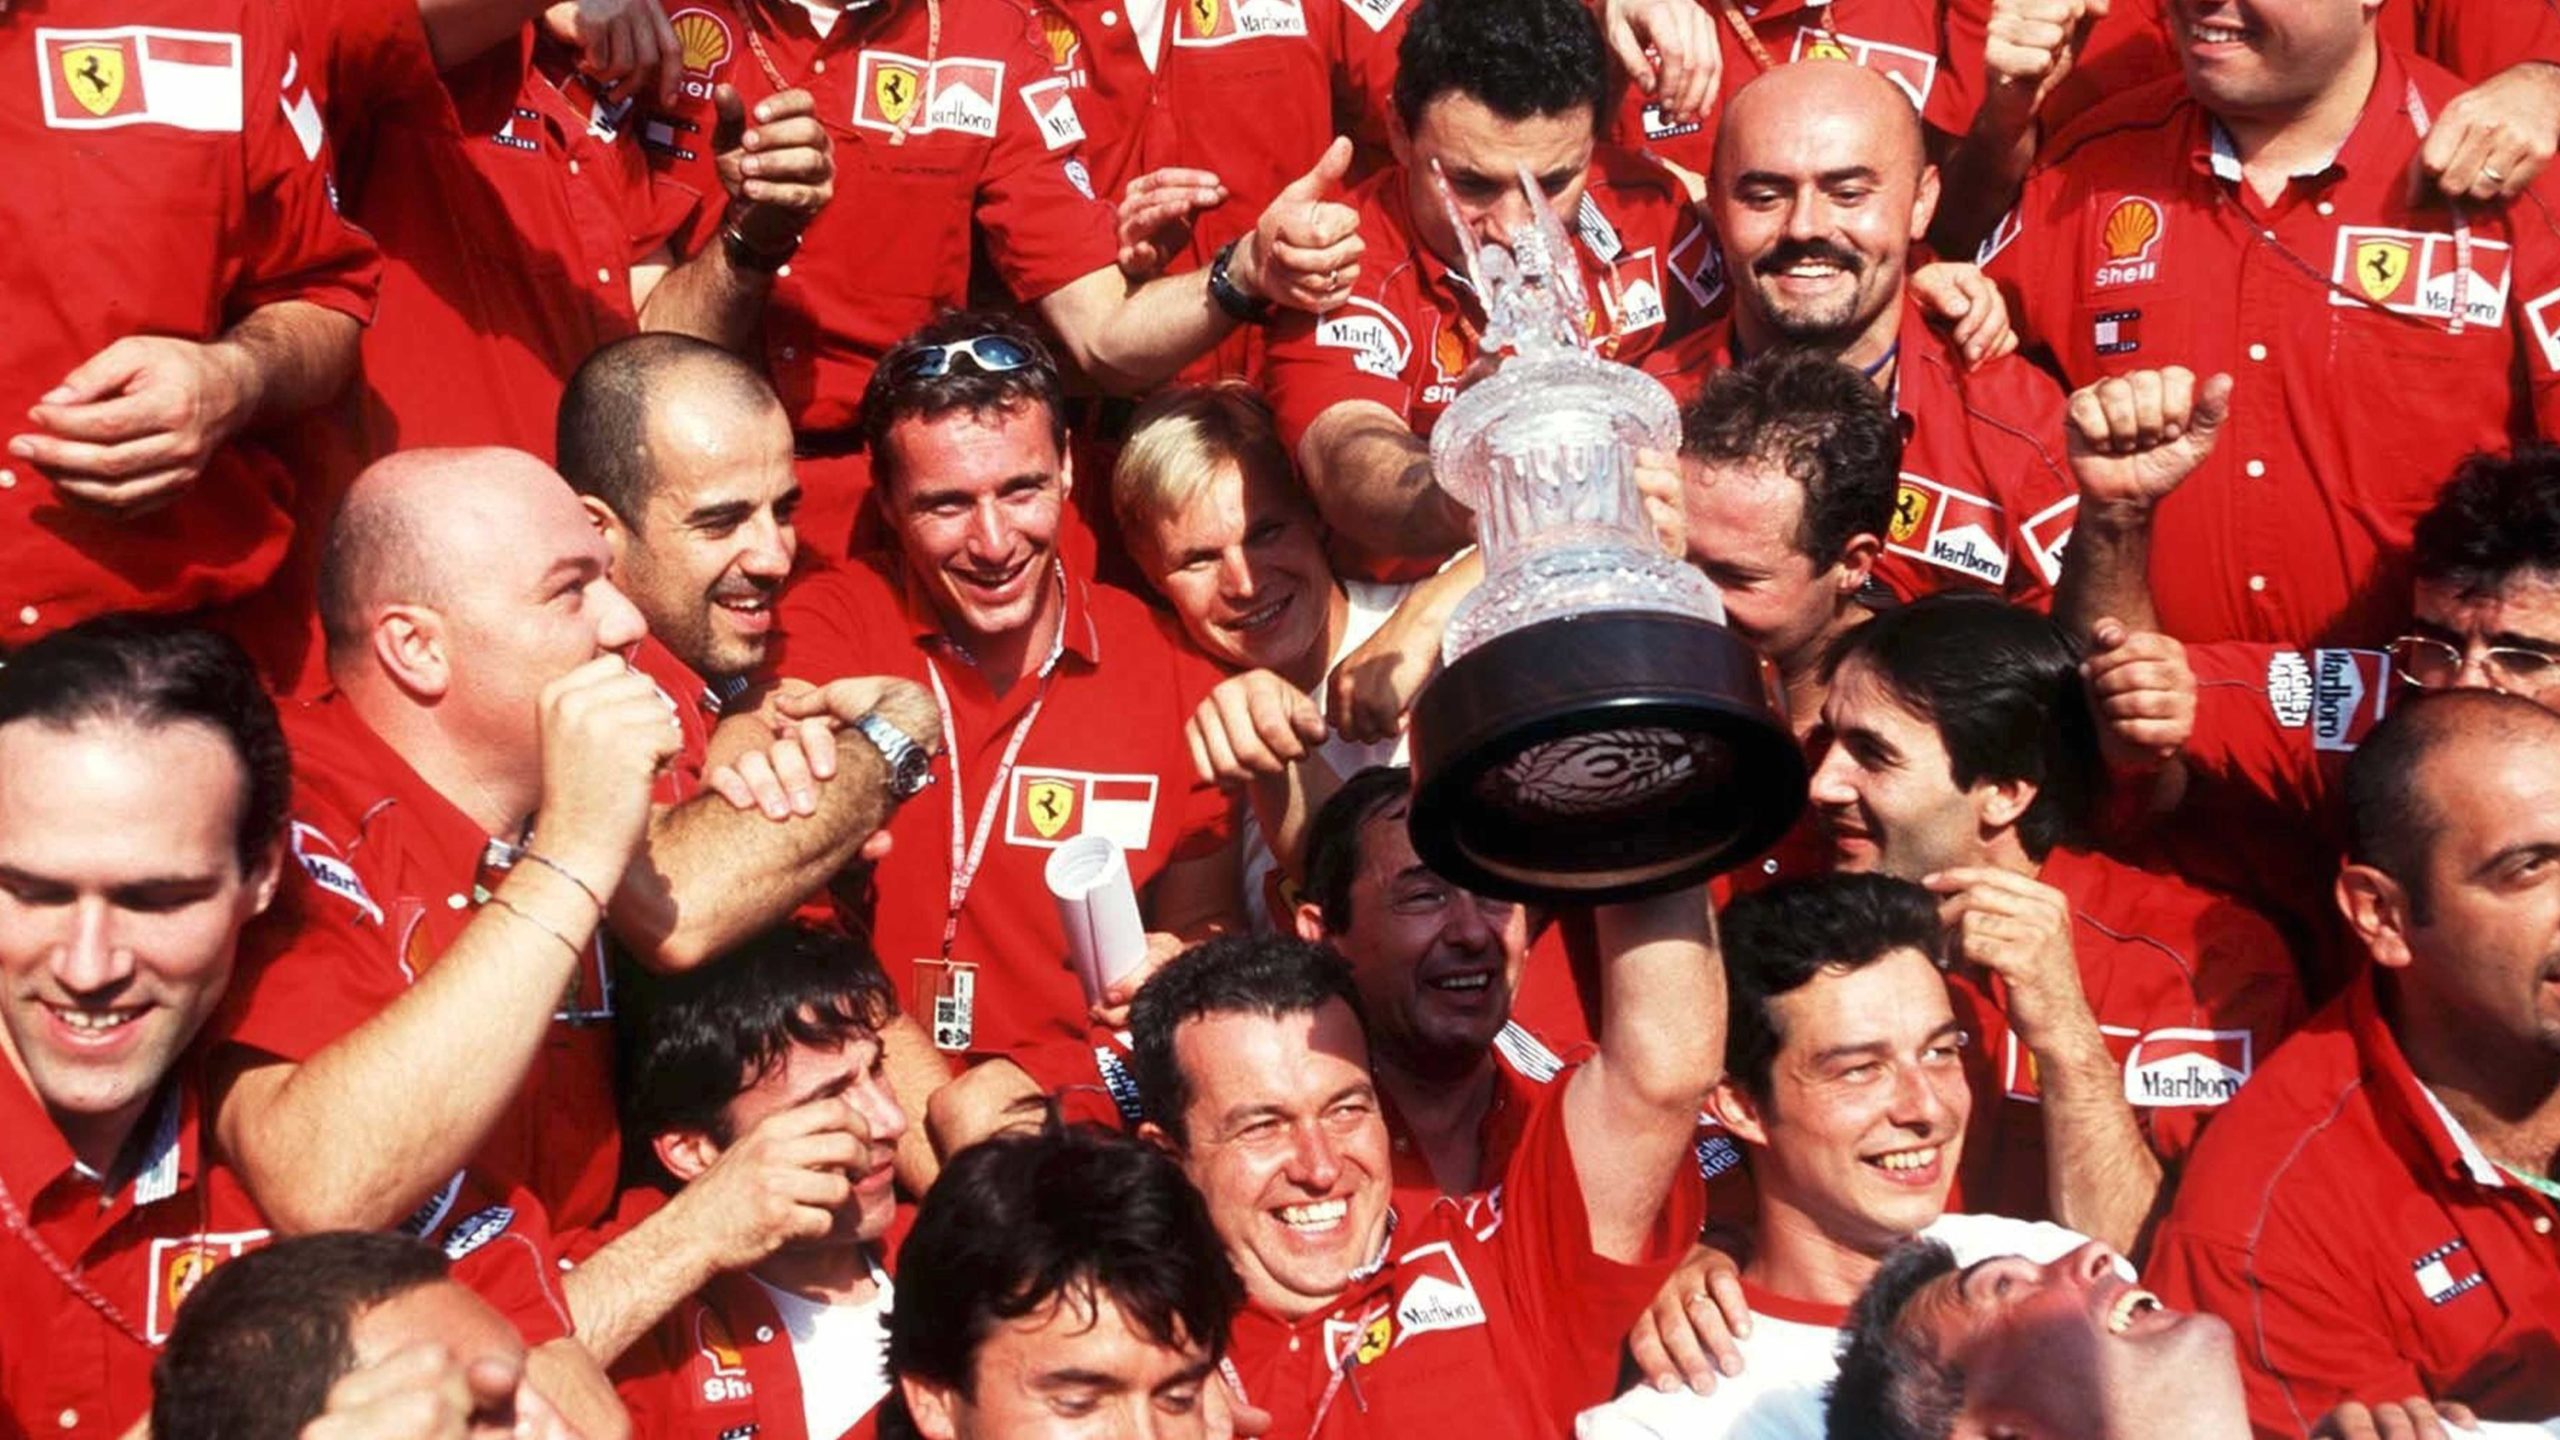 The Ferrari team celebrates after a 1-2 finish at Hockenheim int 1999 F1 German Grand Prix